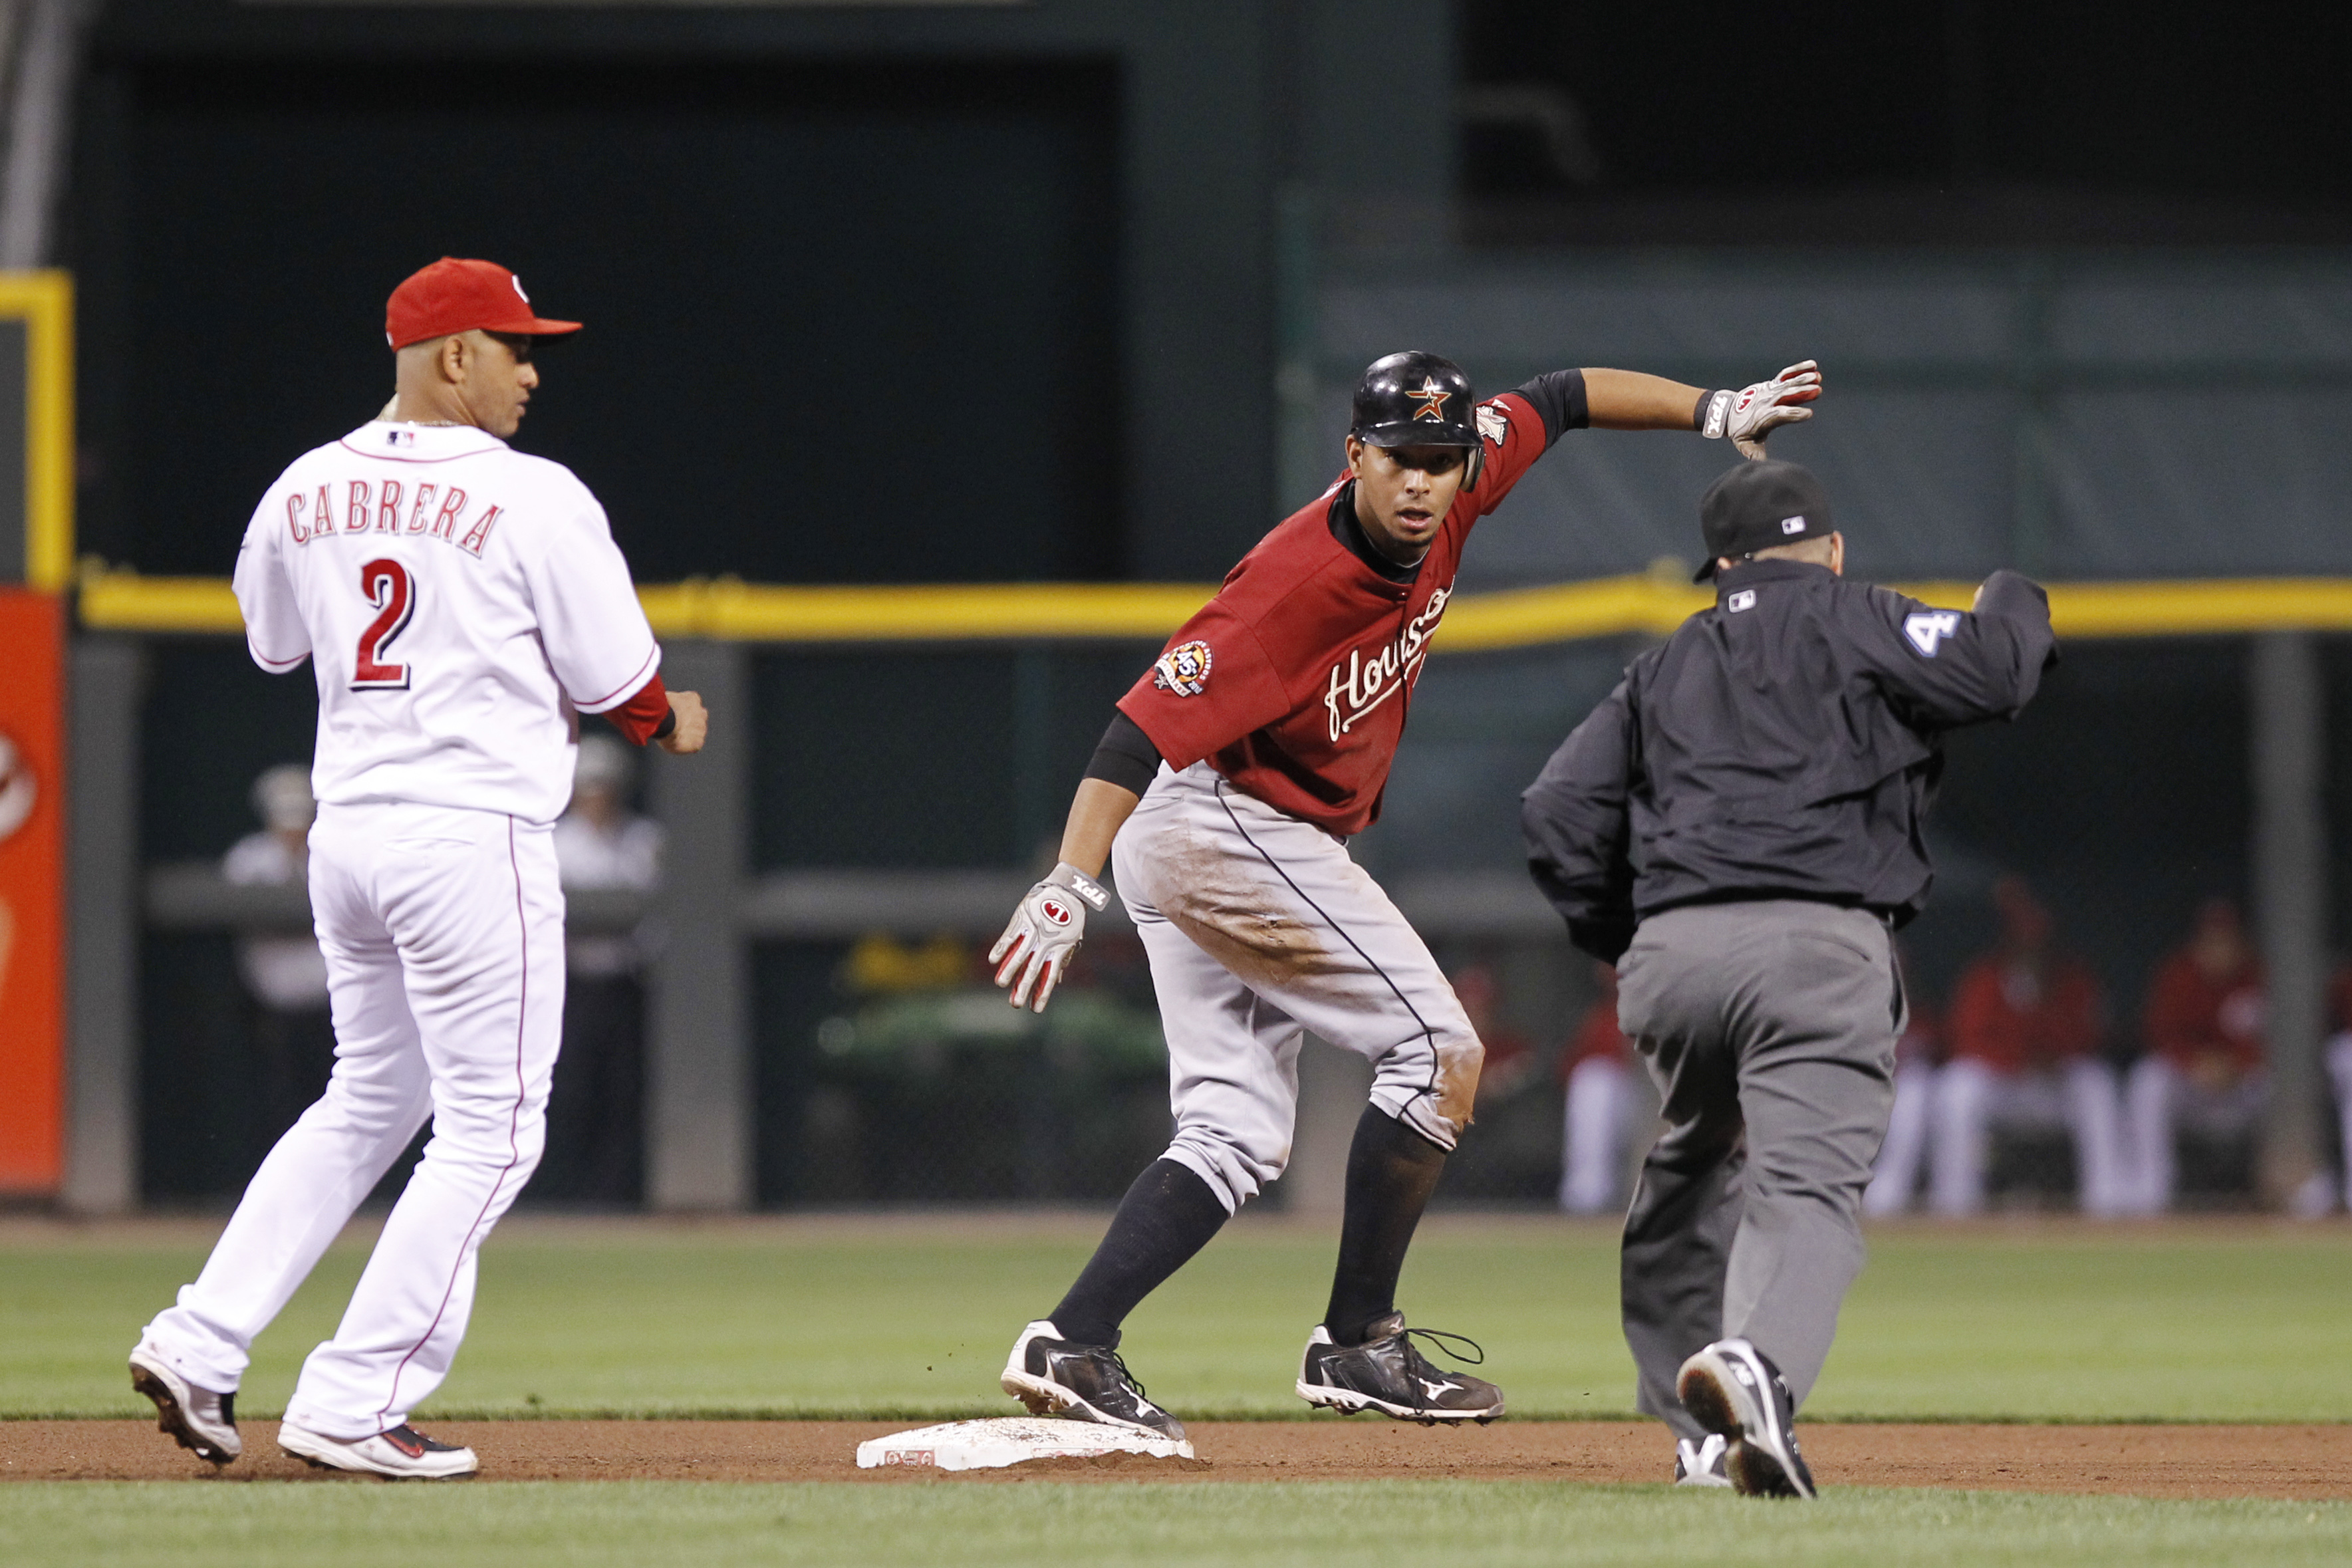 CINCINNATI, OH - SEPTEMBER 28: Angel Sanchez #36 of the Houston Astros looks at second base umpire Jerry Meals after being tagged out by Orlando Cabrera #2 of the Cincinnati Reds at Great American Ball Park on September 28, 2010 in Cincinnati, Ohio. The R